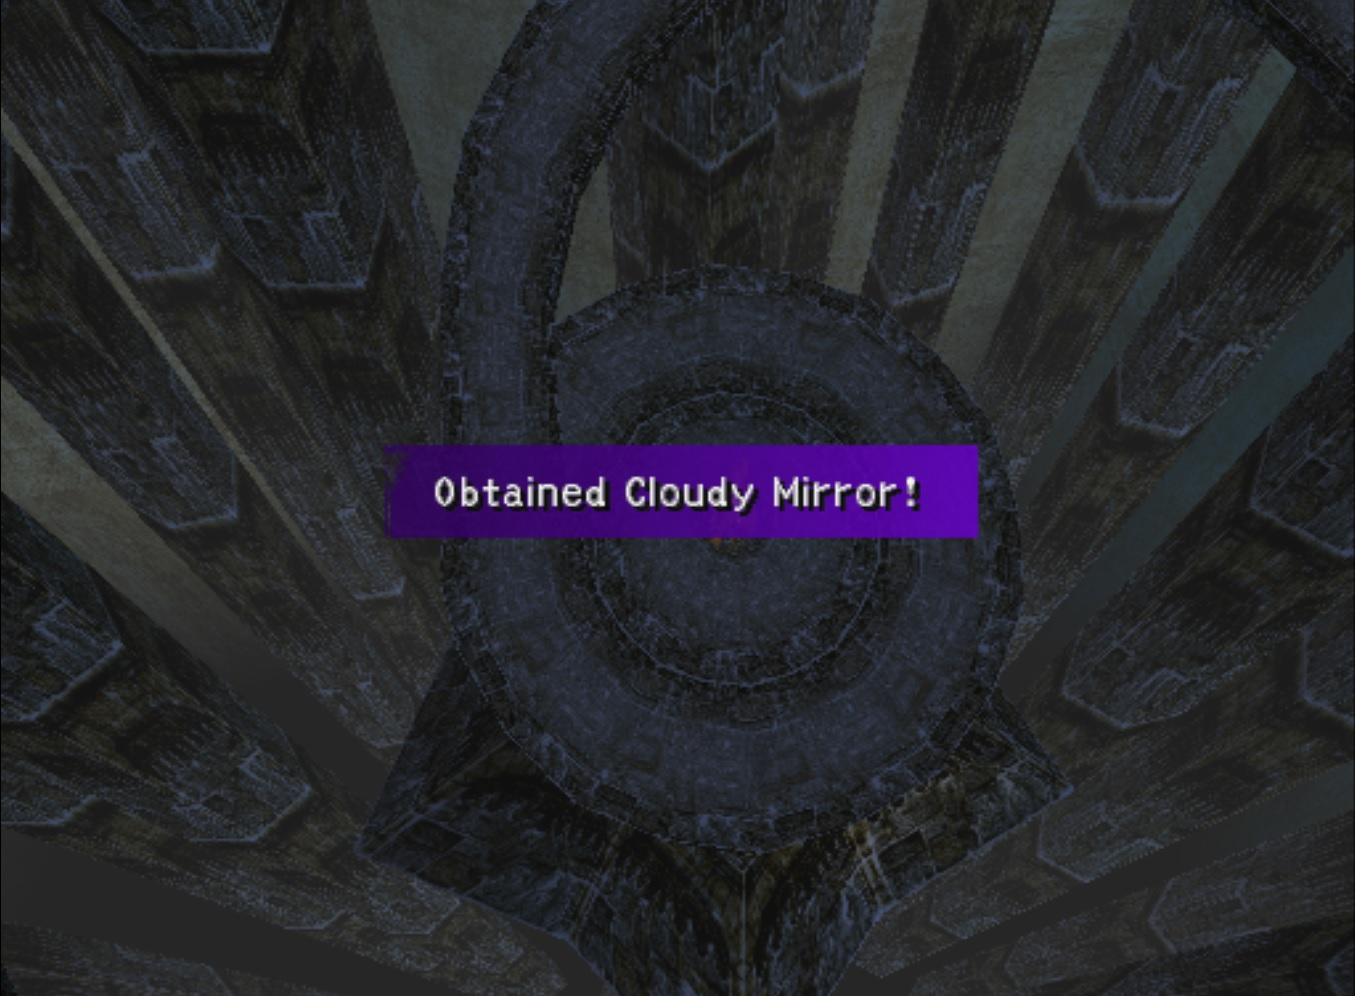 Cloudy Mirror Obtained